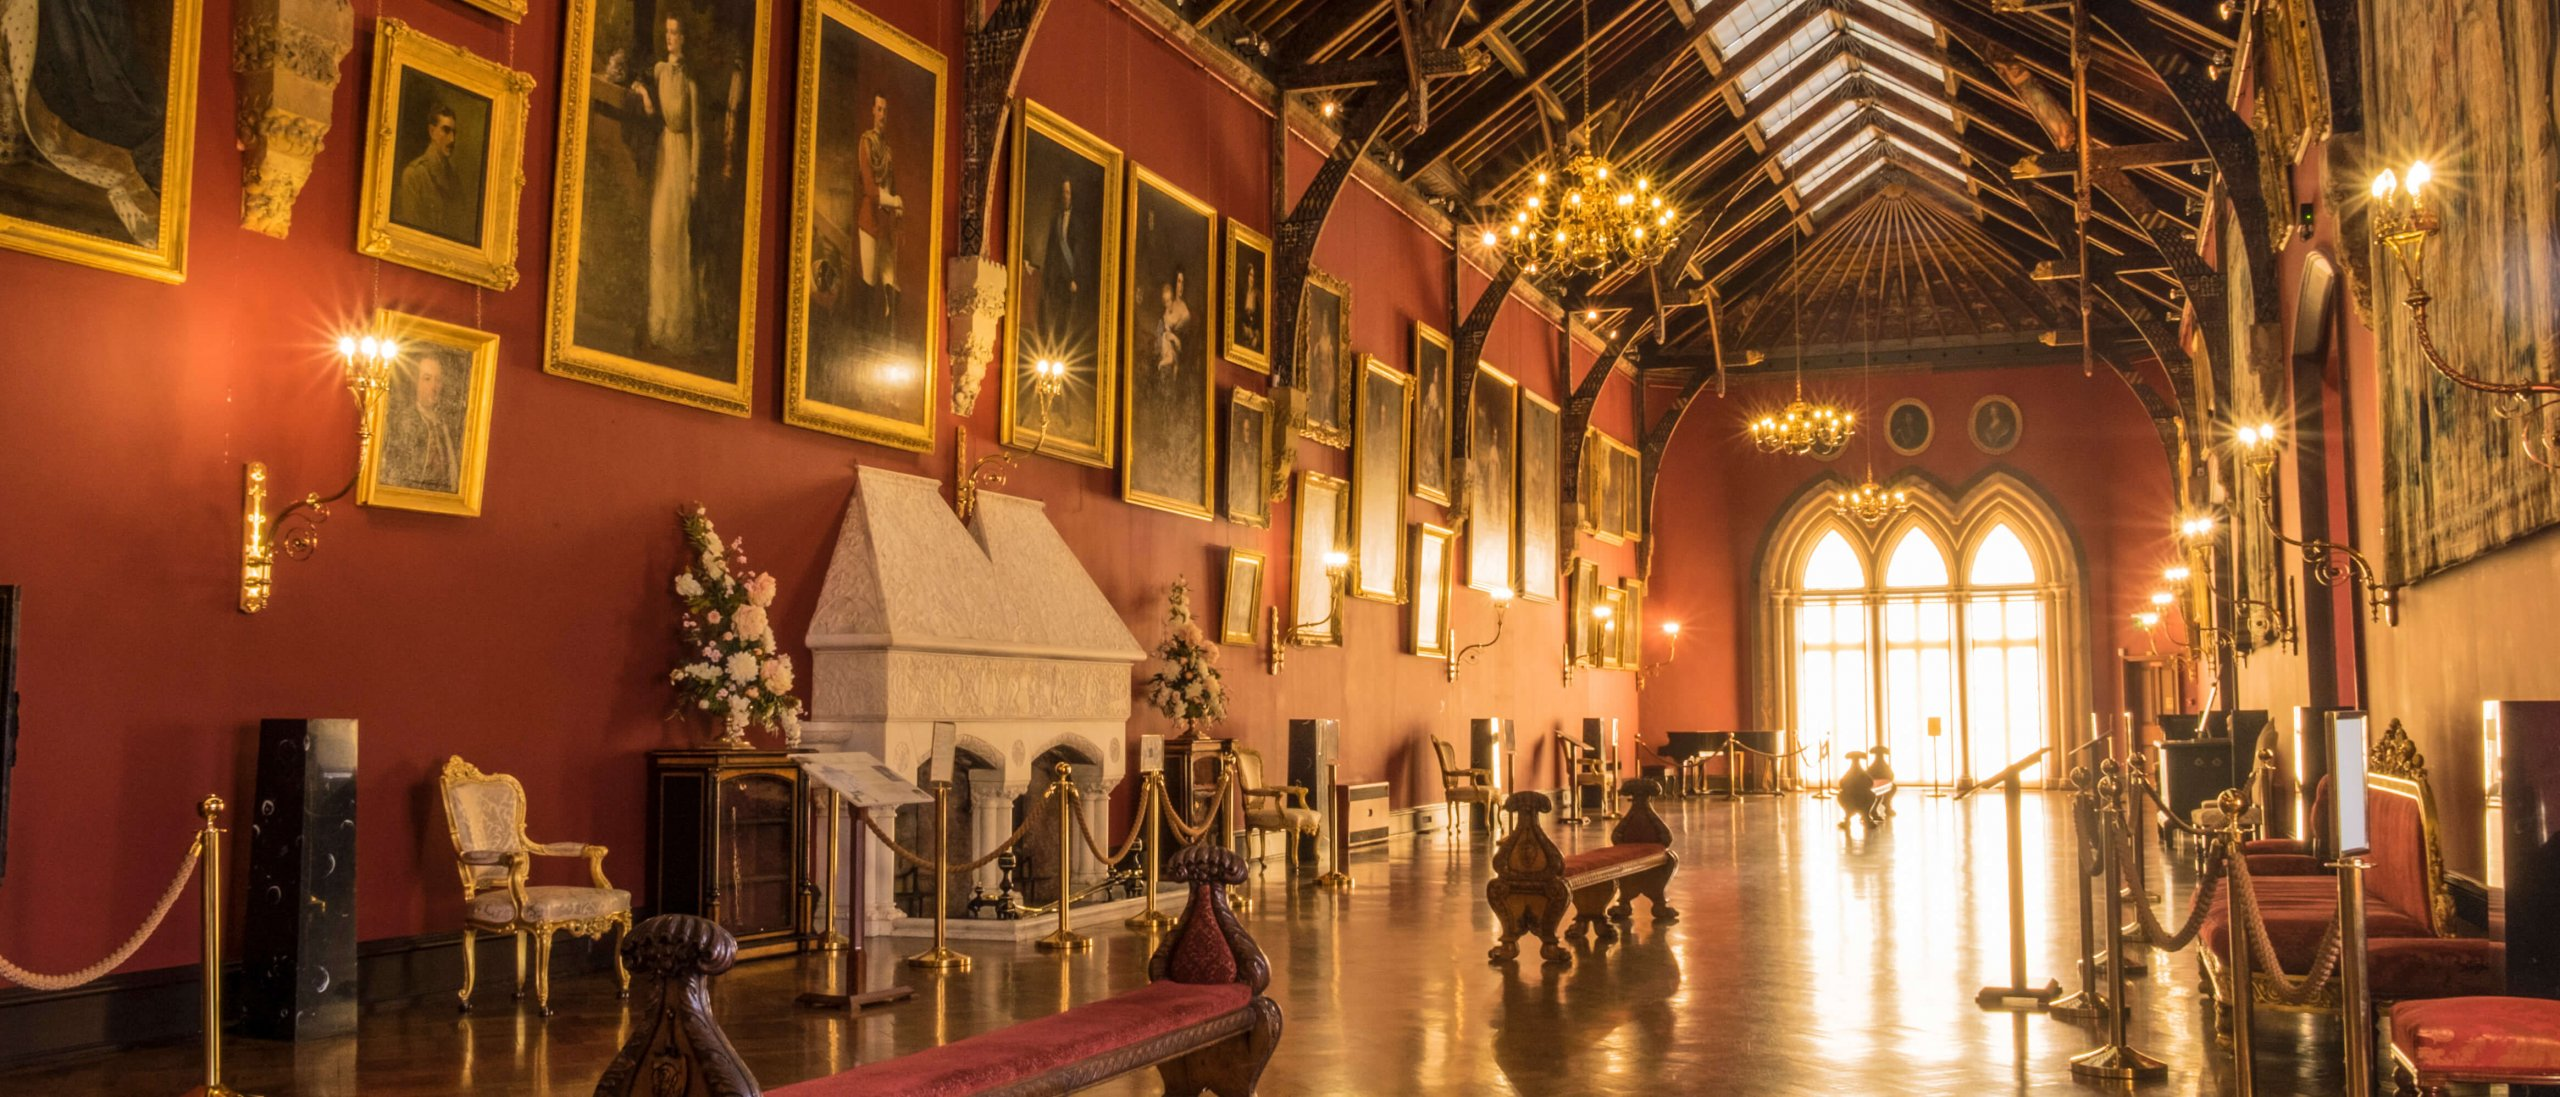 Ornately decorated museum hall in Kilkenny Castle, Ireland